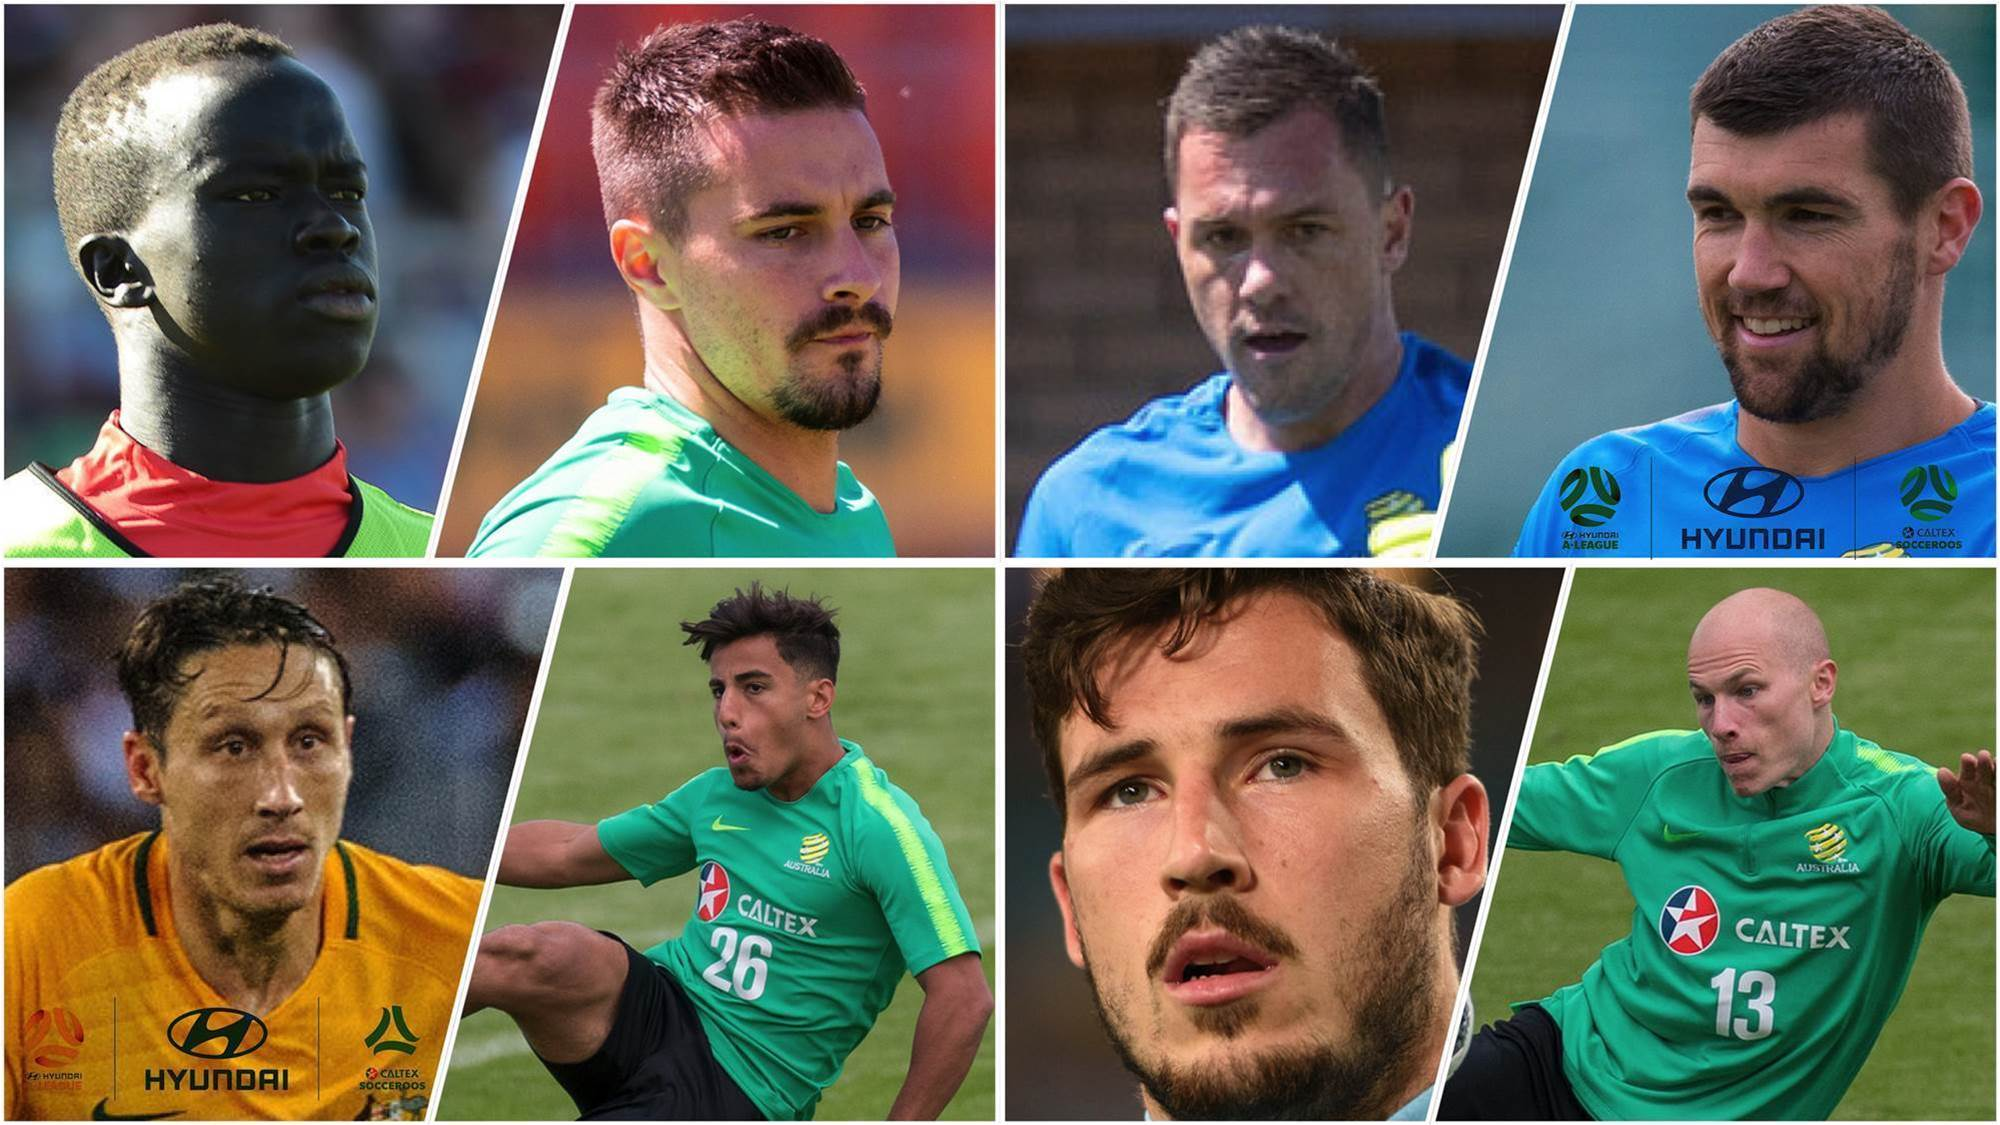 Top 14 Socceroos Made in the Hyundai A-League